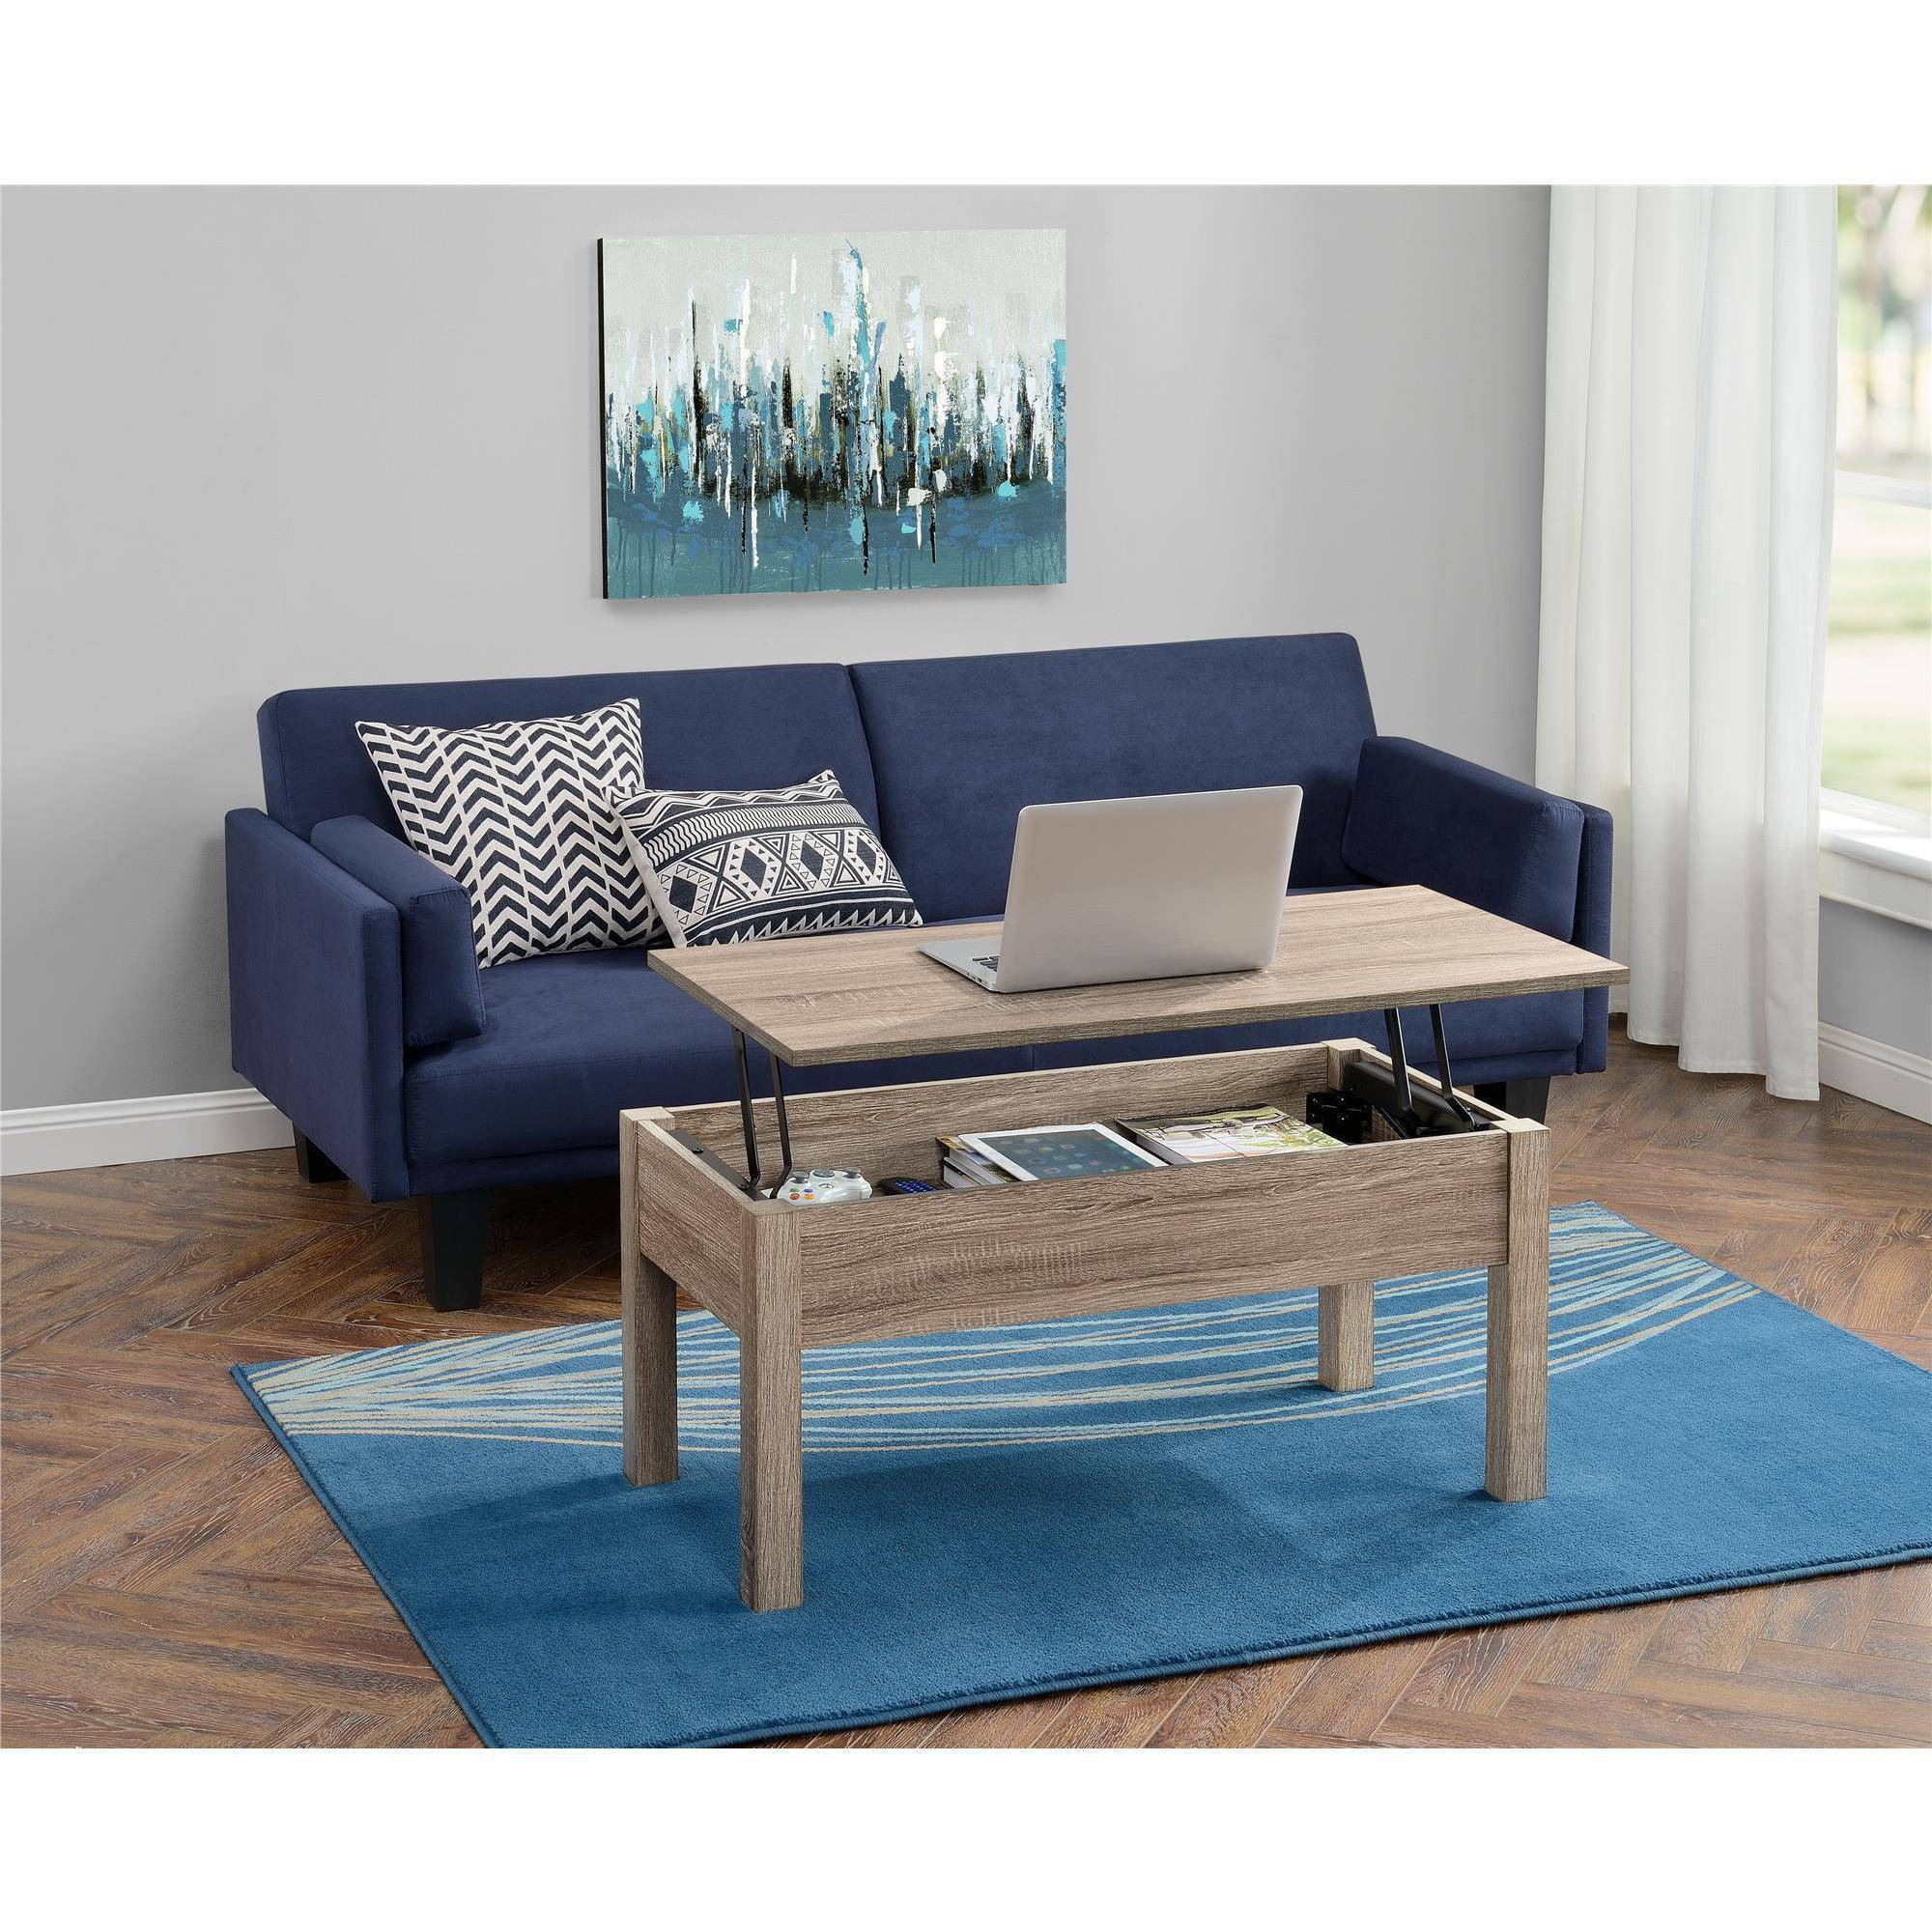 Mainstays Lift-Top Coffee Table, Multiple Colors - Walmart inside Coffee Tables Extendable Top (Image 17 of 30)